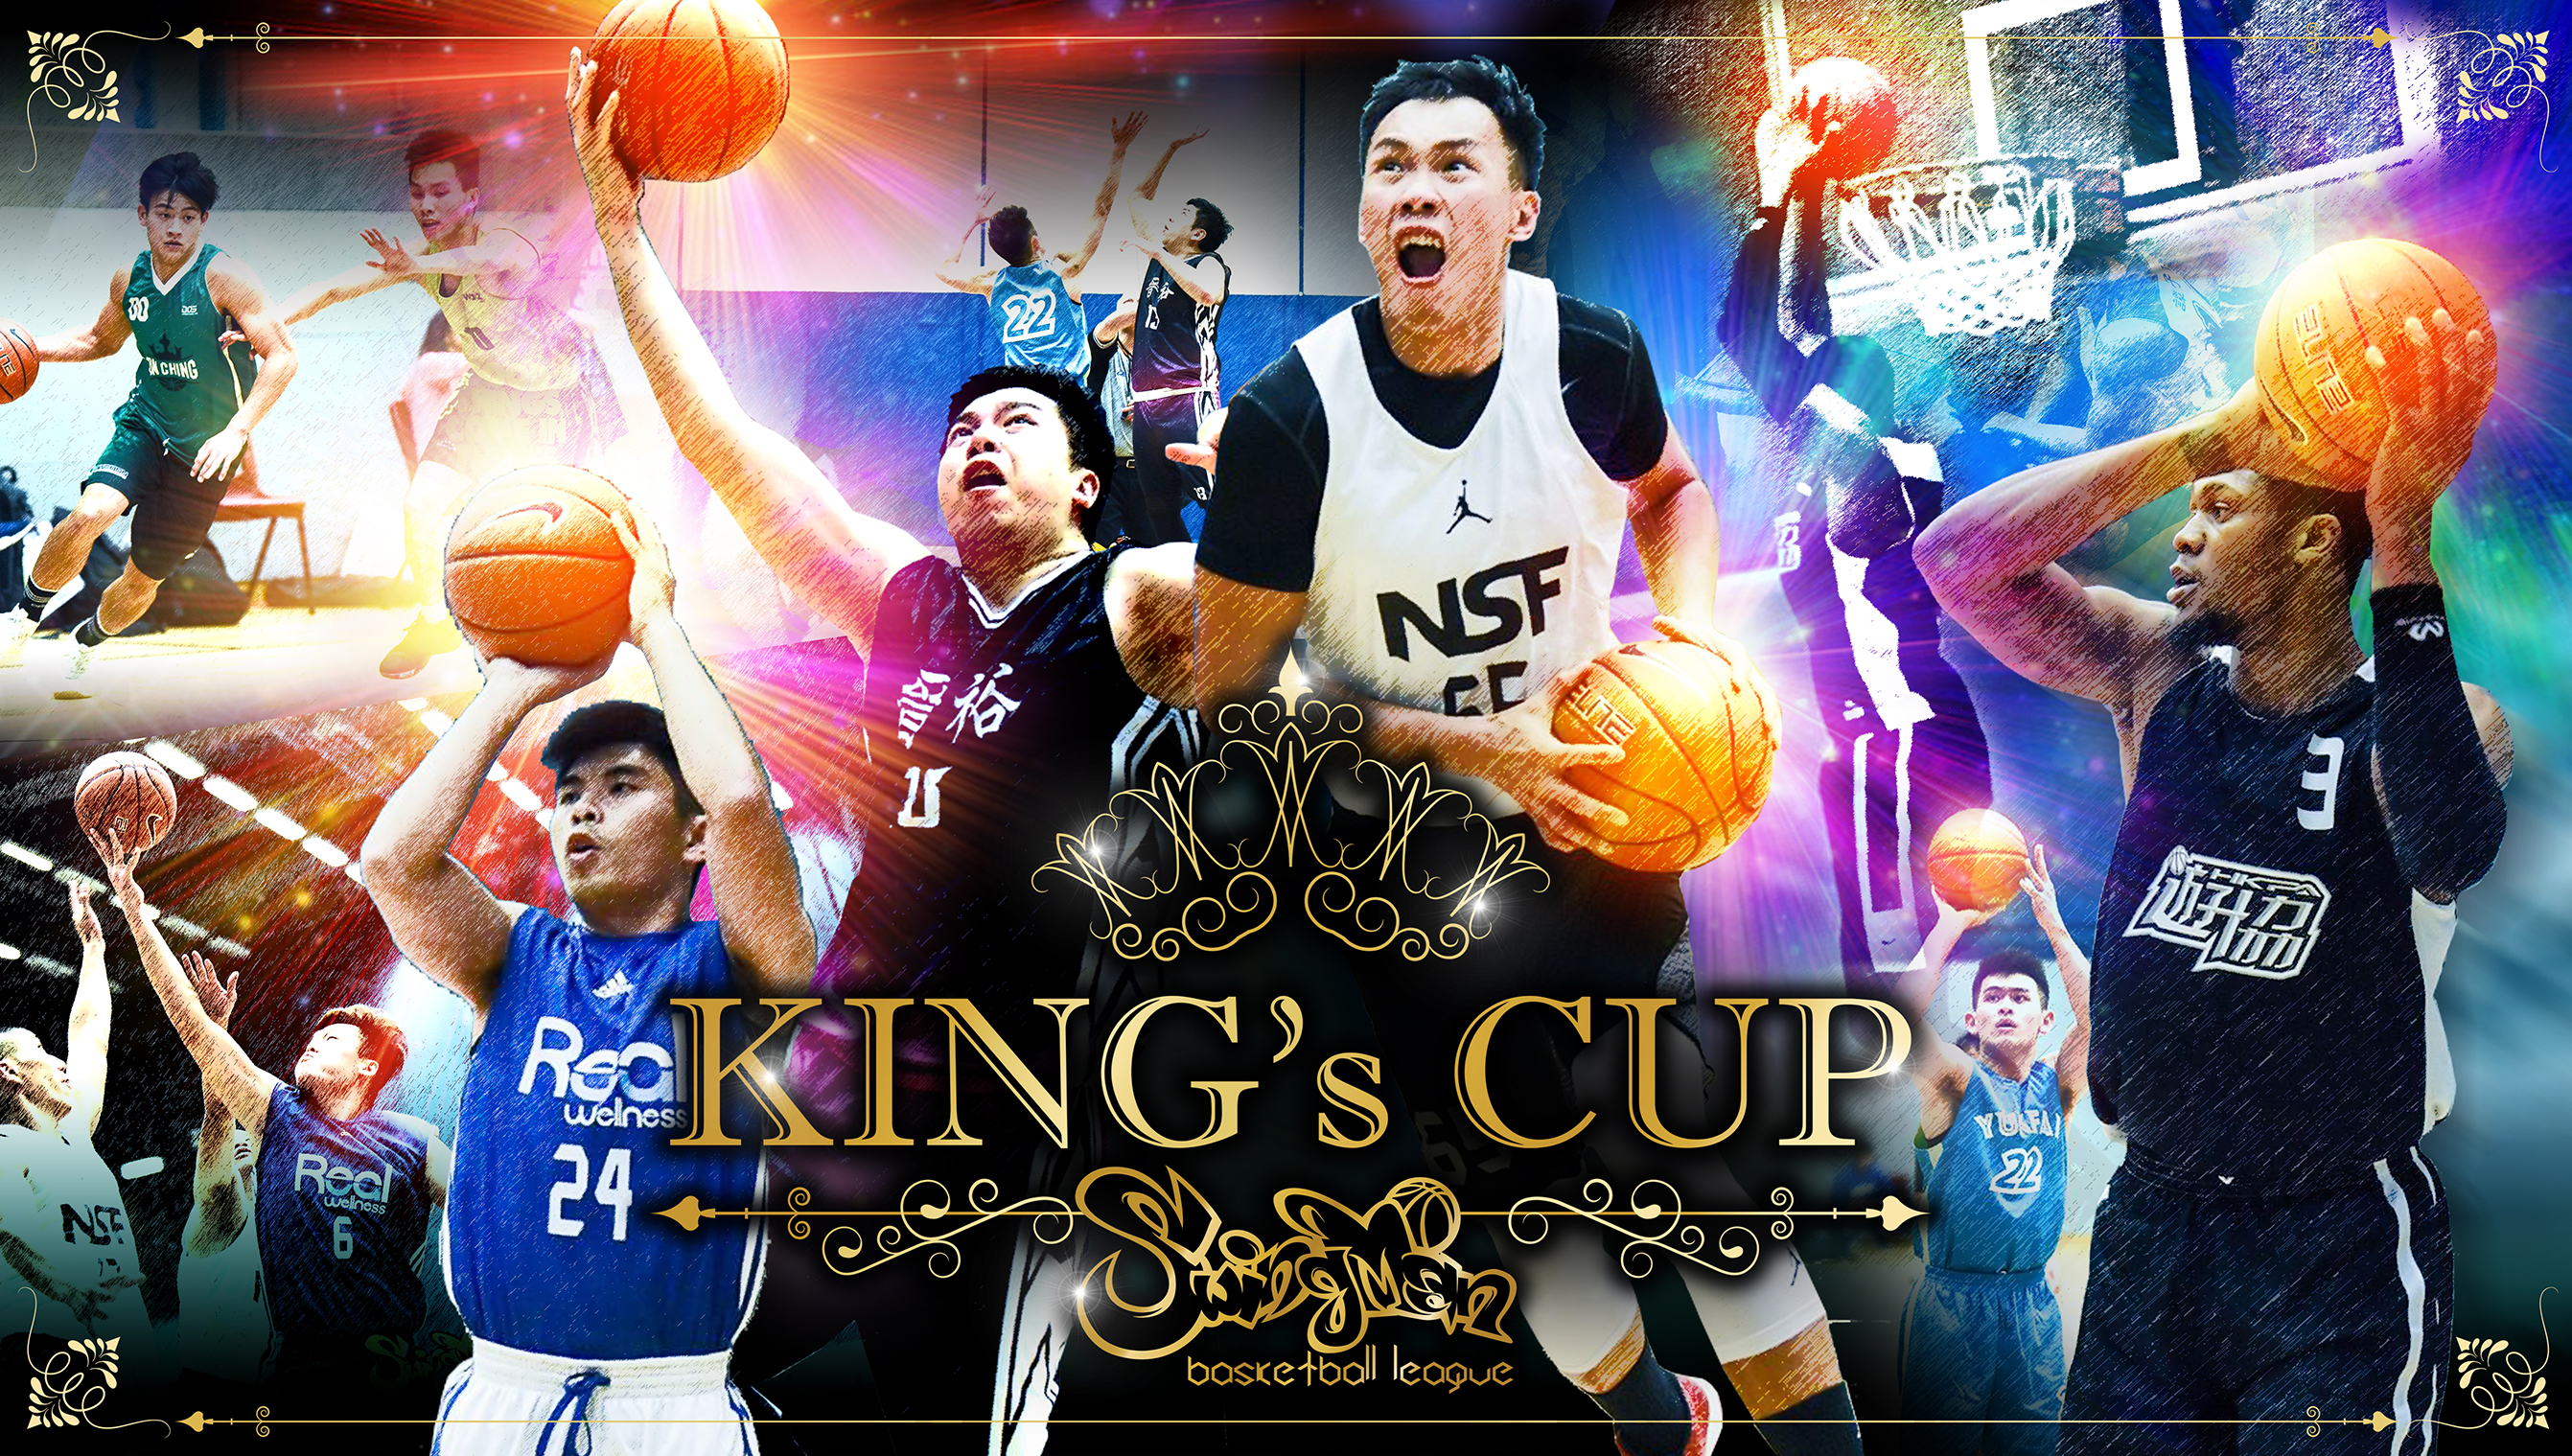 SwingMan King's Cup